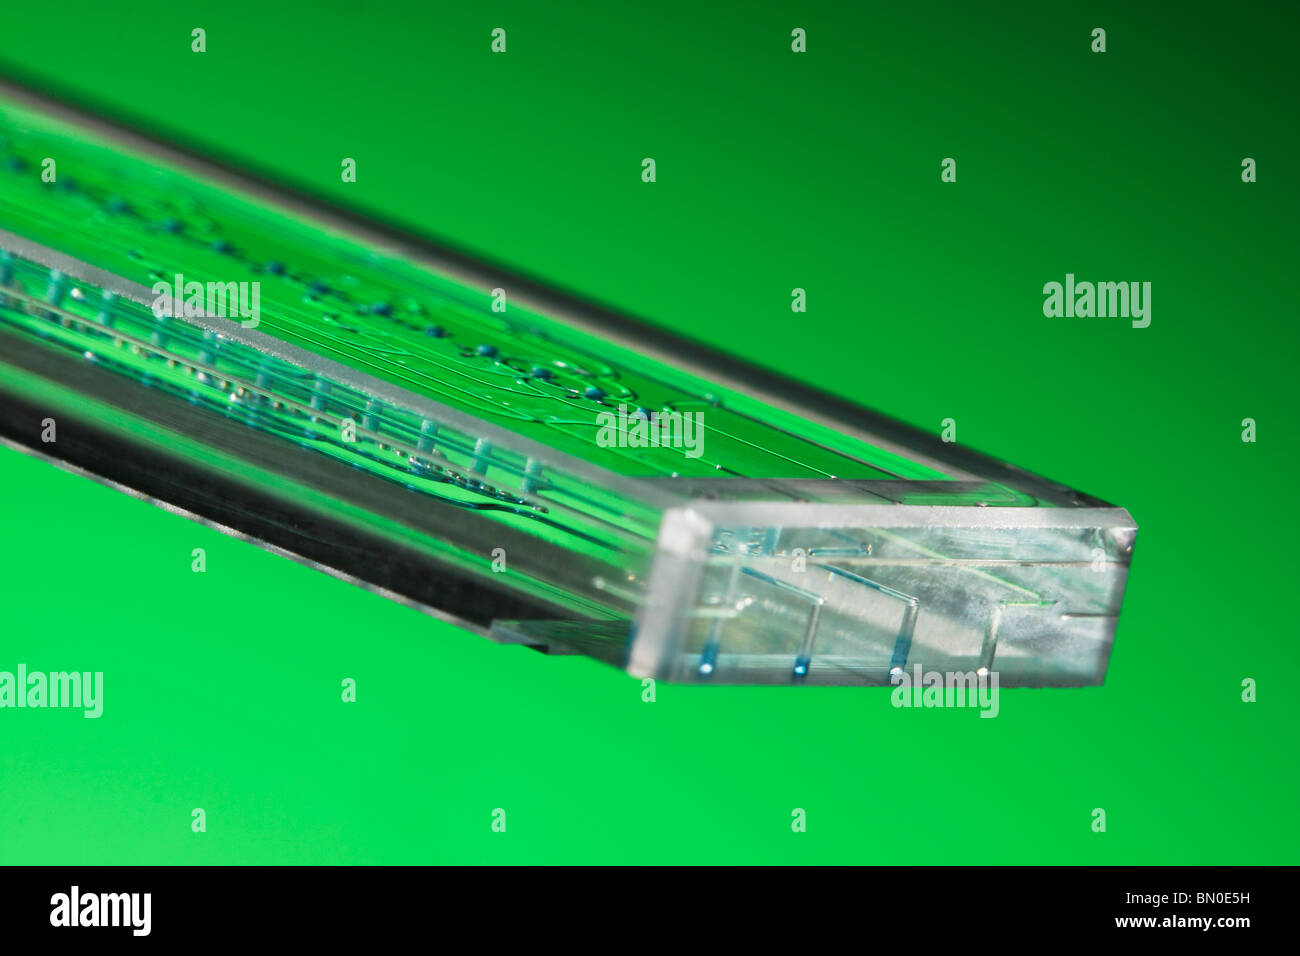 Microfluidic etched glass microreactor chip mixing mutiple fluid streams of liquids in micro & nano technology - Stock Image